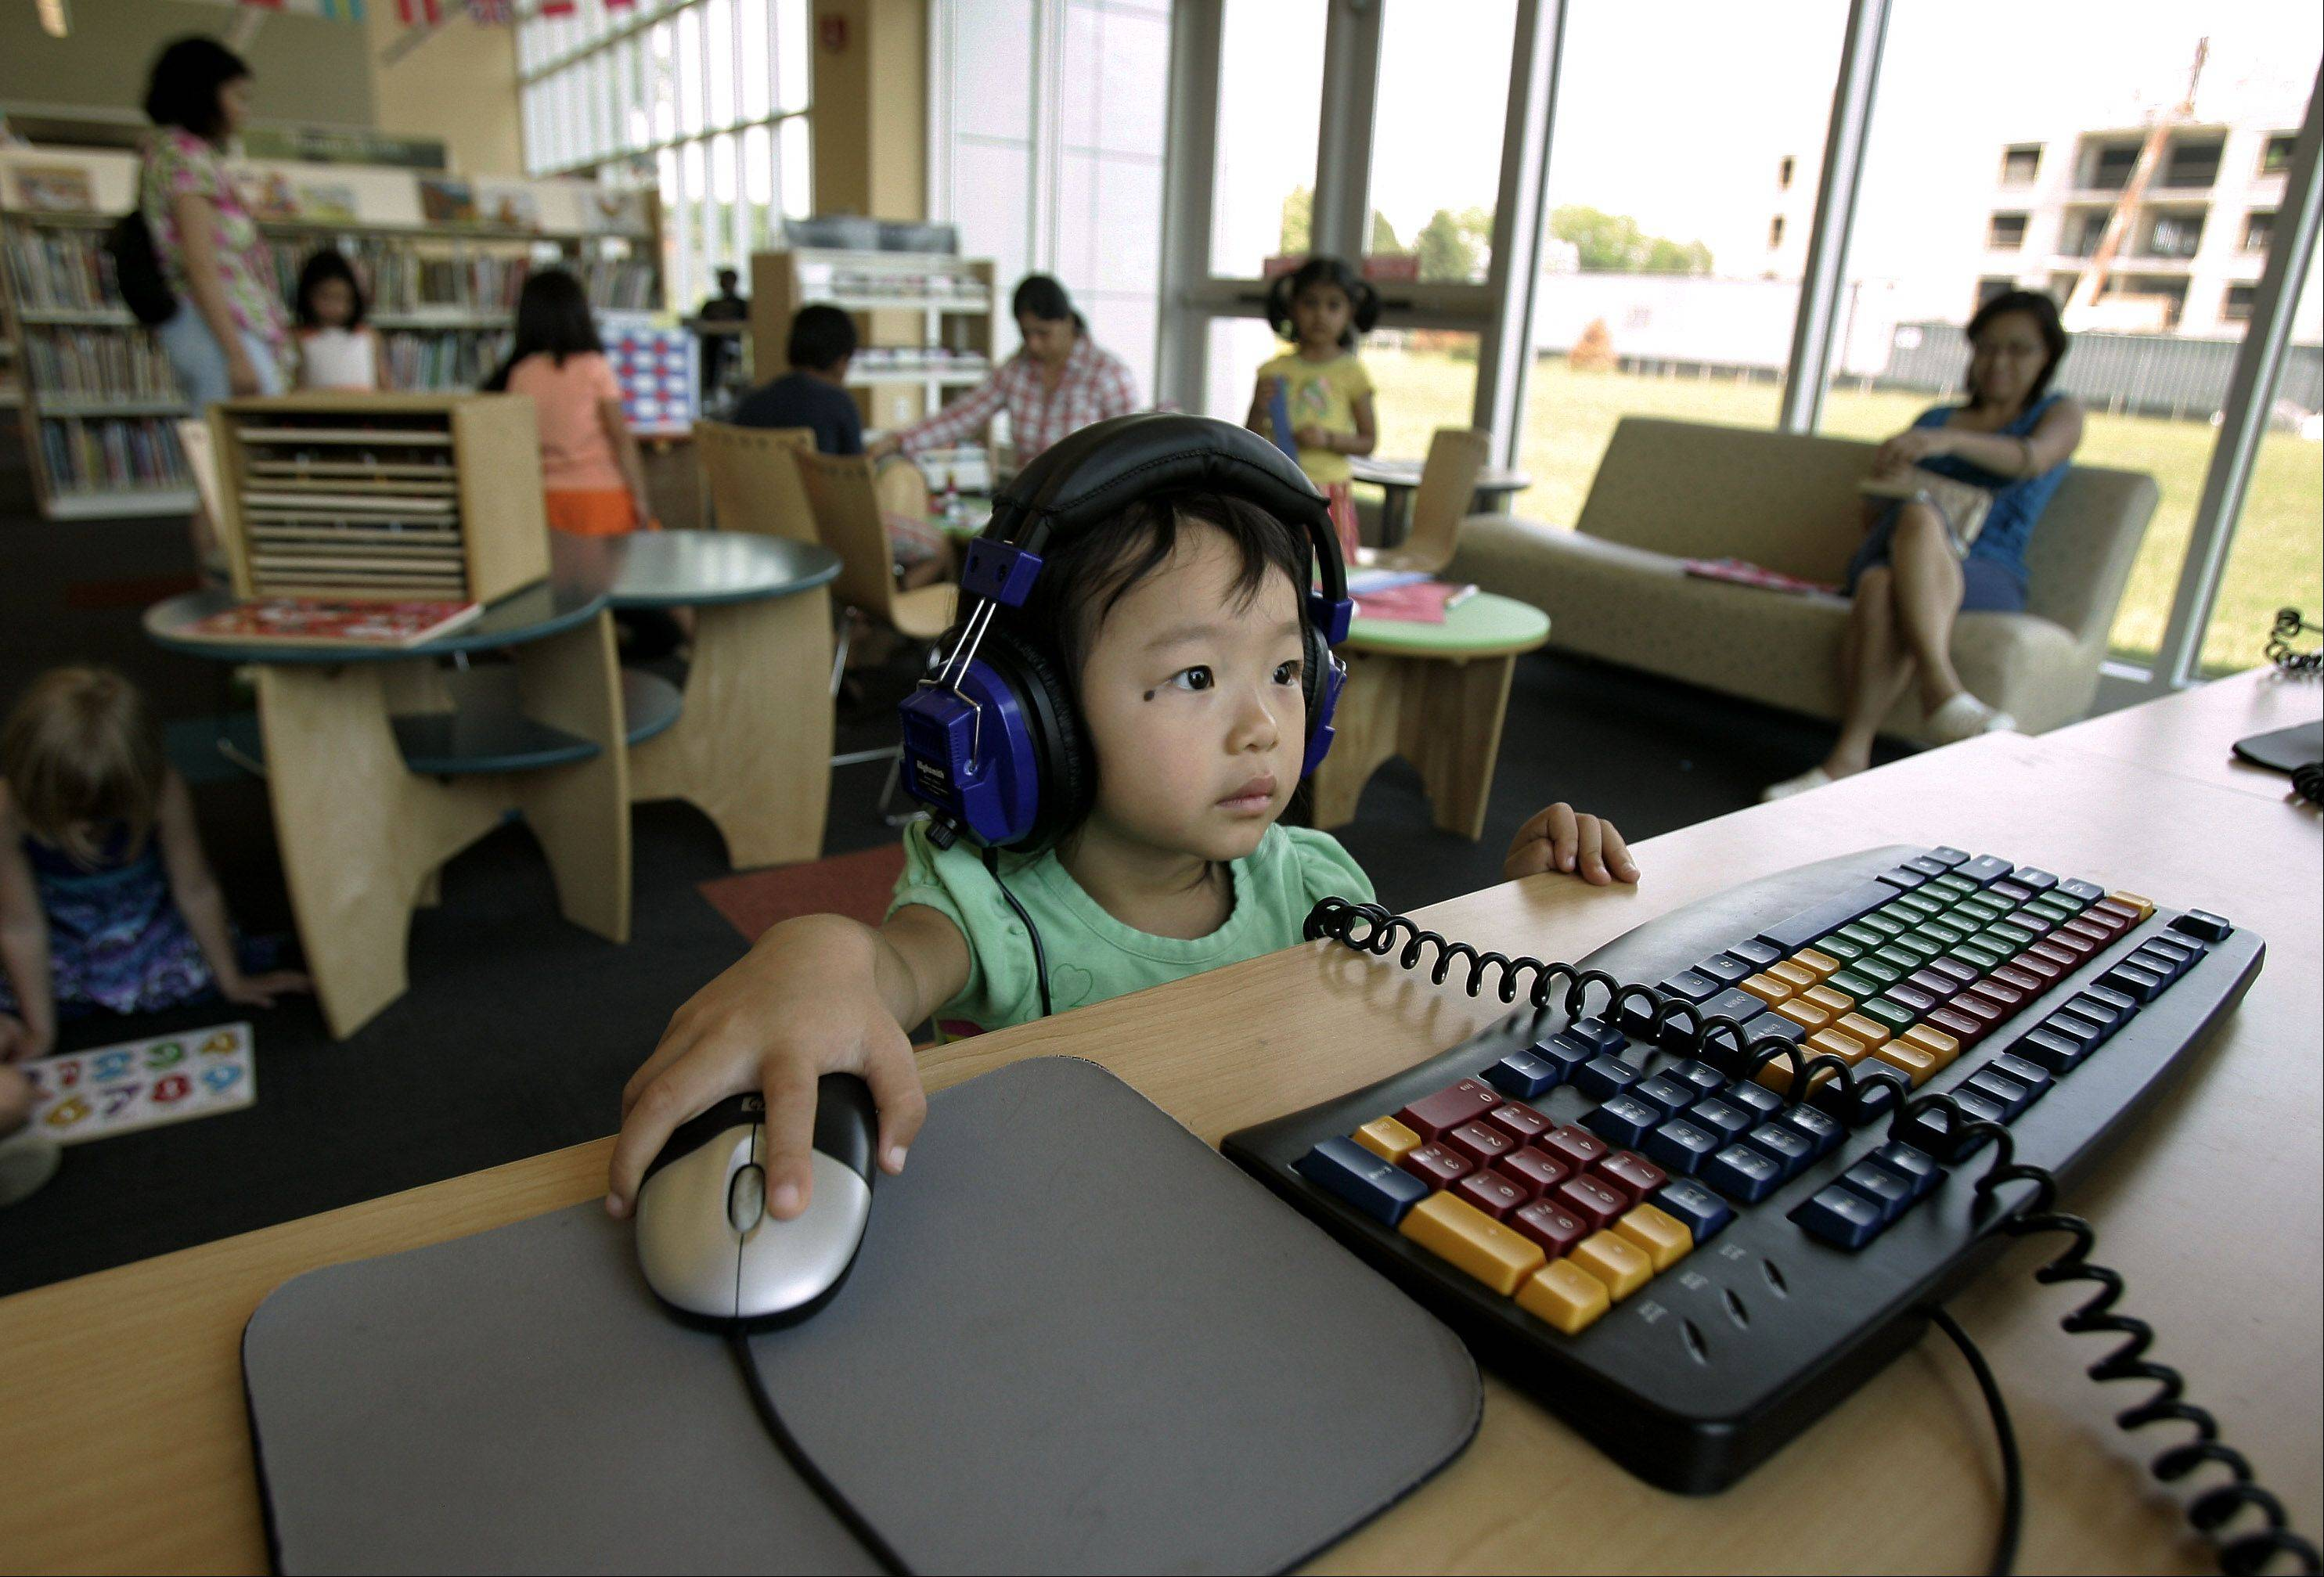 Yvonne Tarman, 2, of Libertyville plays on a computer in the children�s section at the Aspen Drive Library in Vernon Hills.